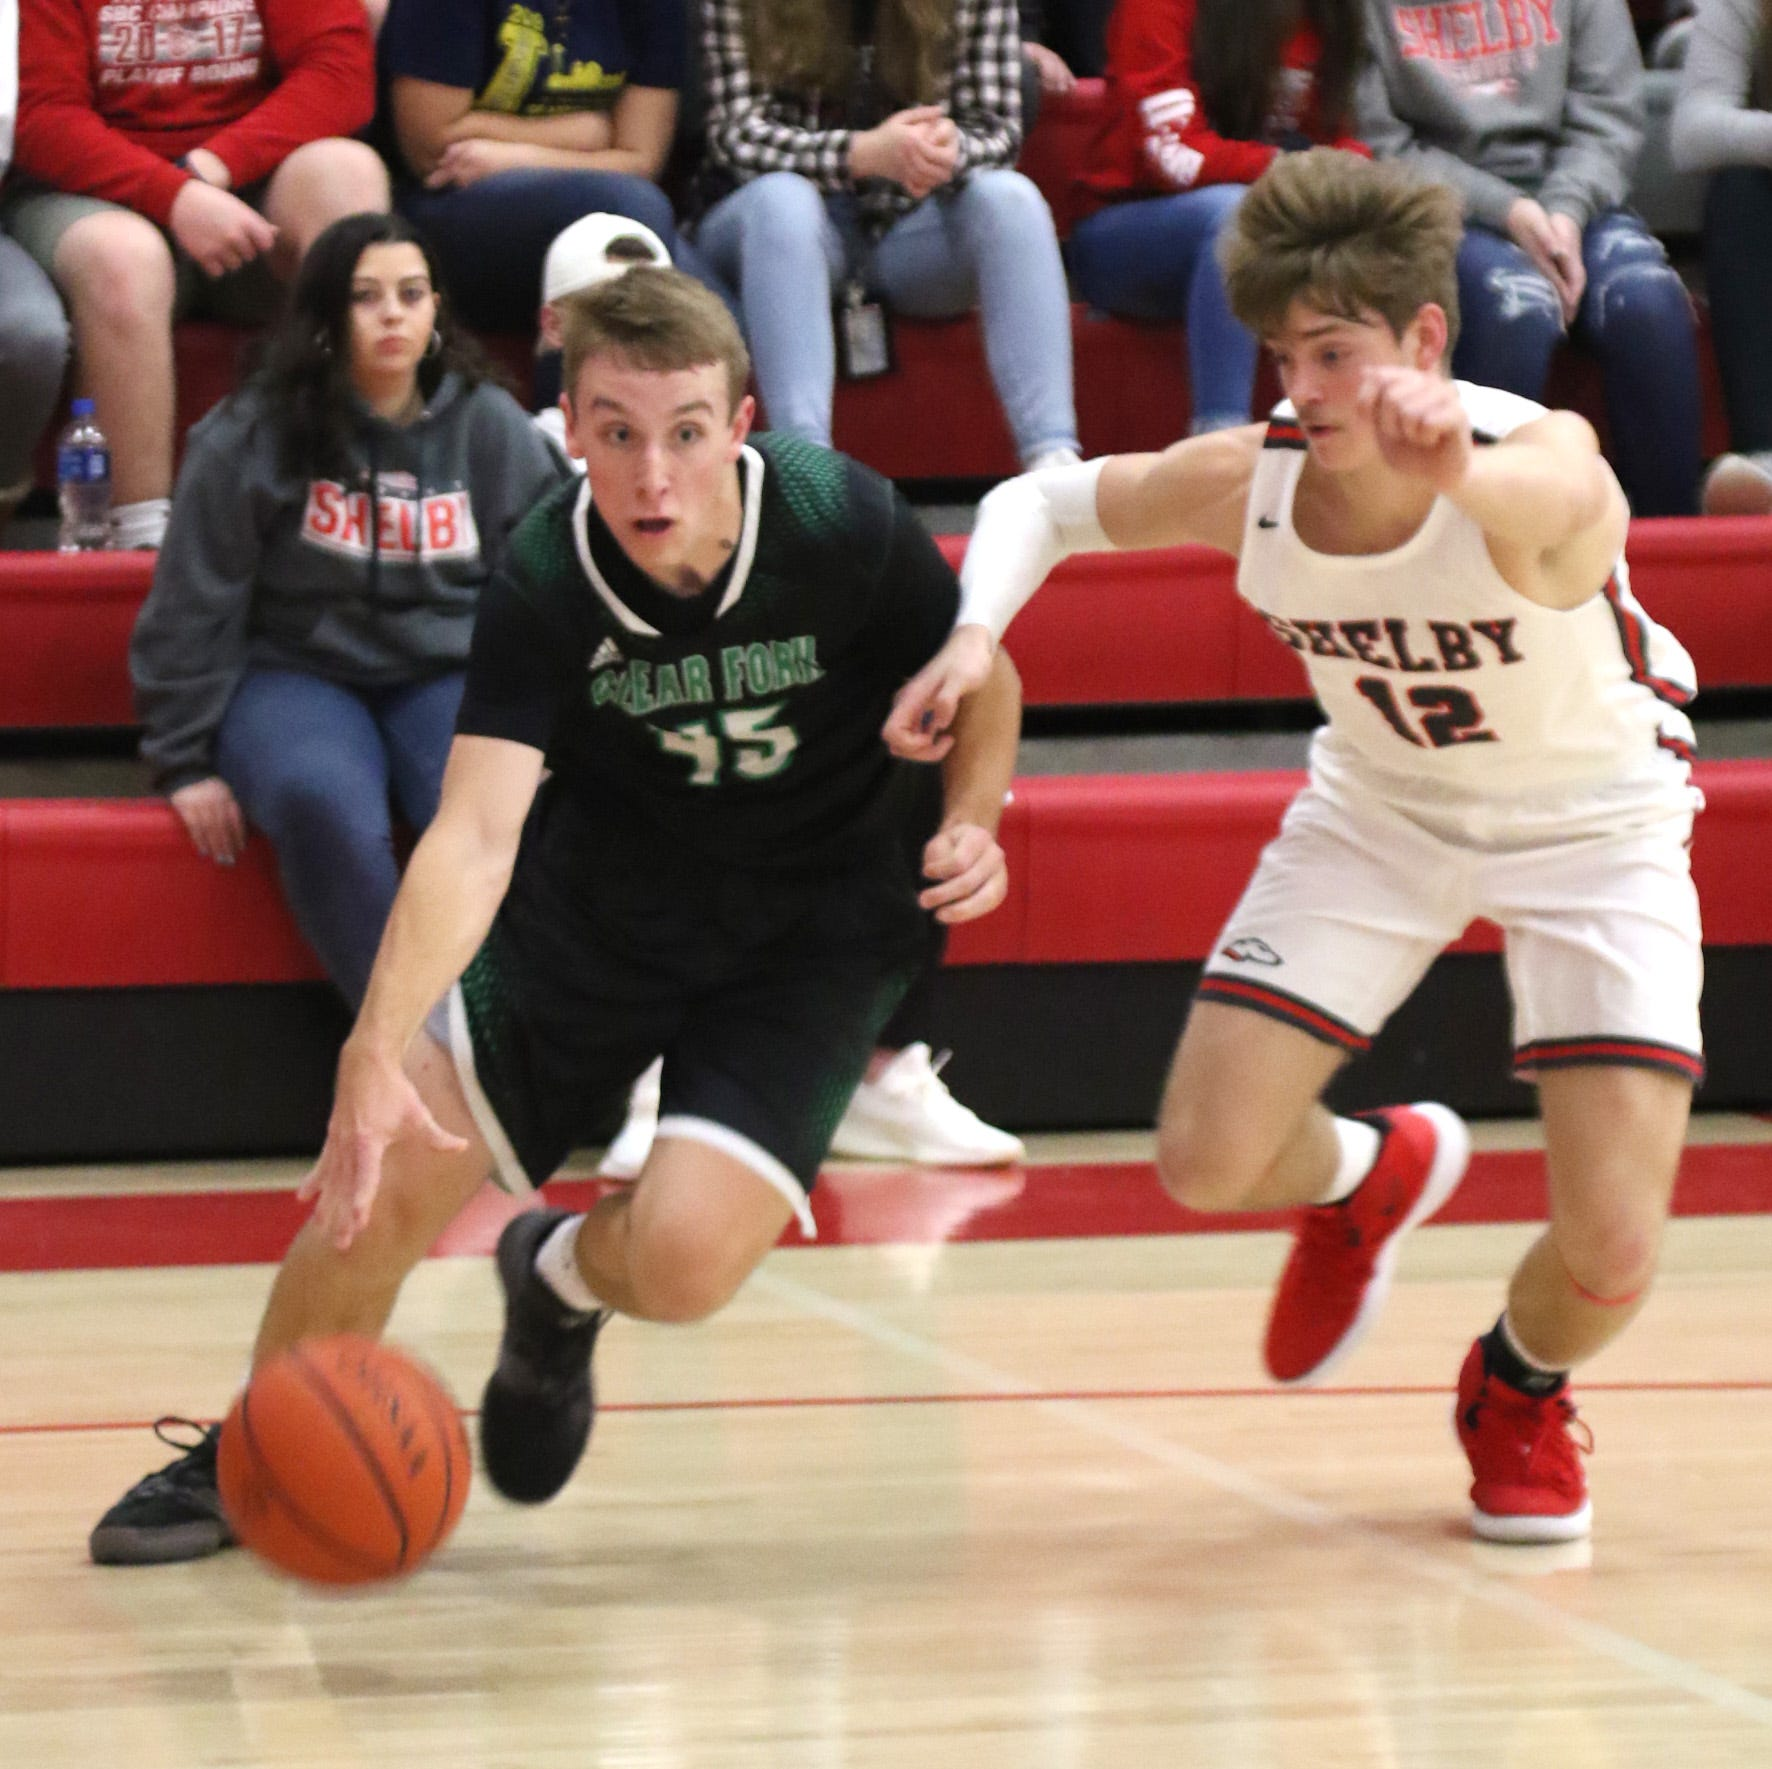 Clear Fork Colts battle way to victory over the Shelby Whippets